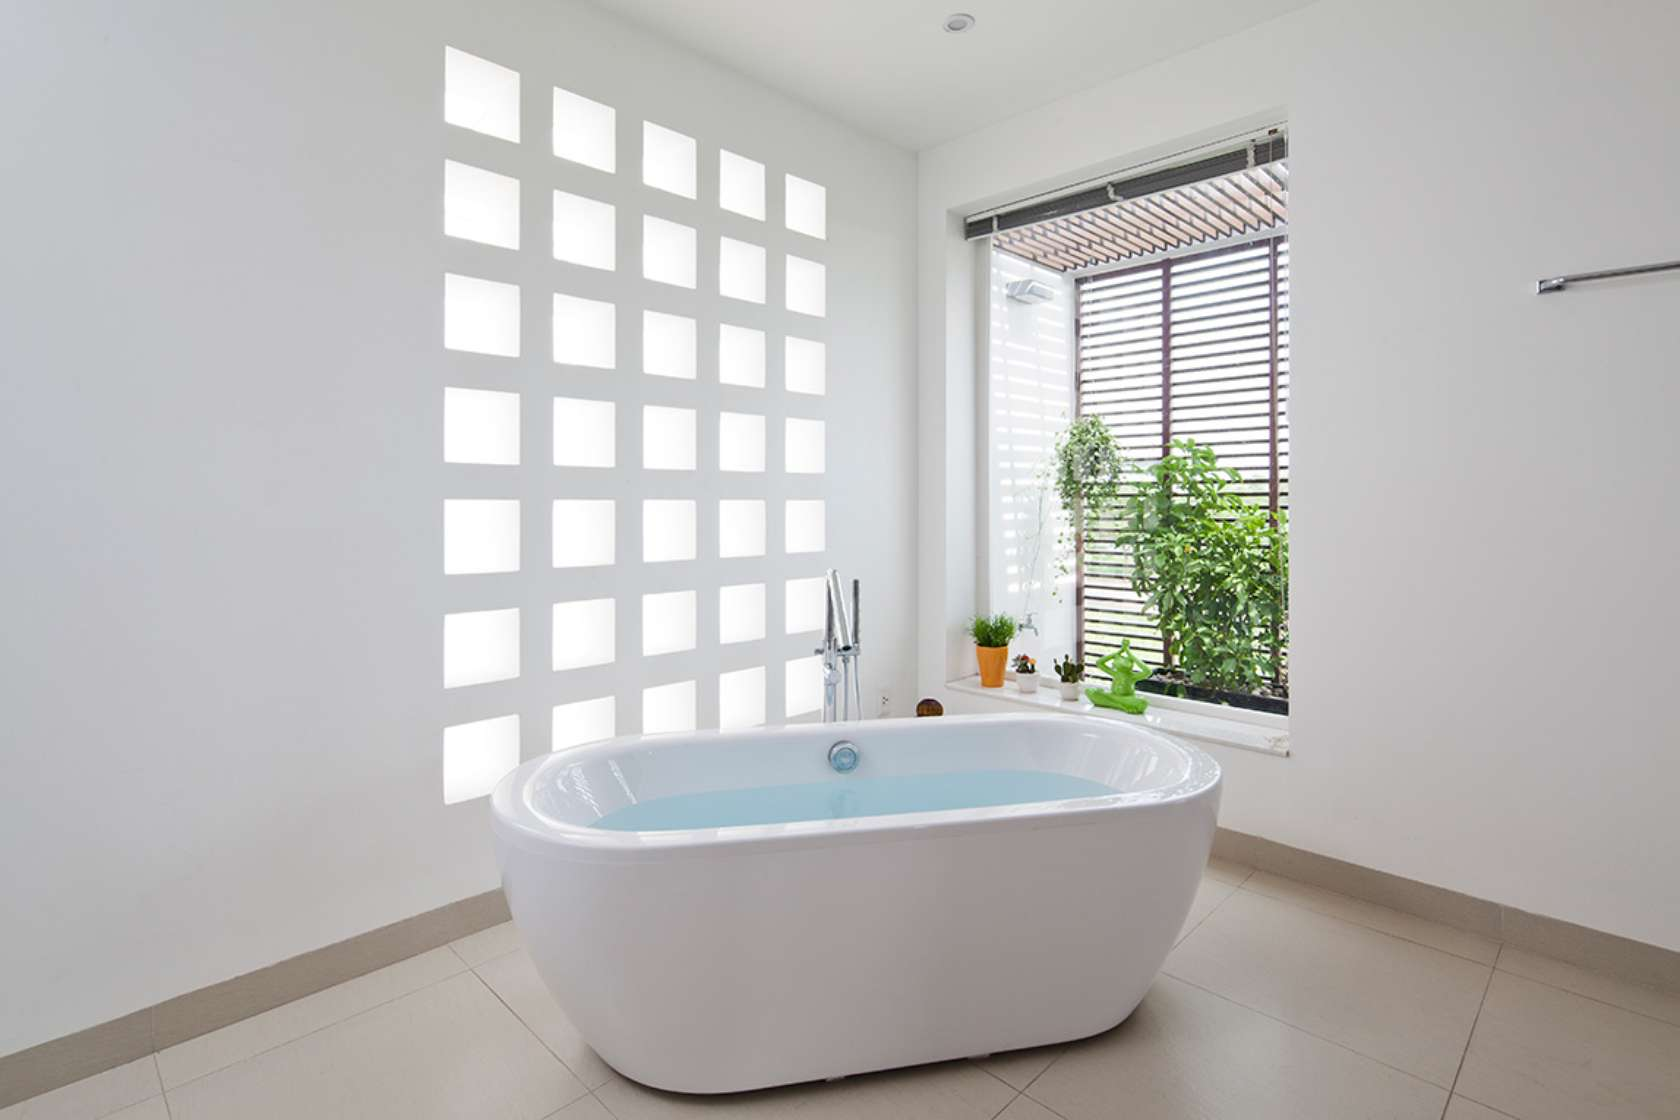 Newspaper of the West praised the words of 3-storey townhouse with beautiful garden in Saigon - Beautiful House No. (15)